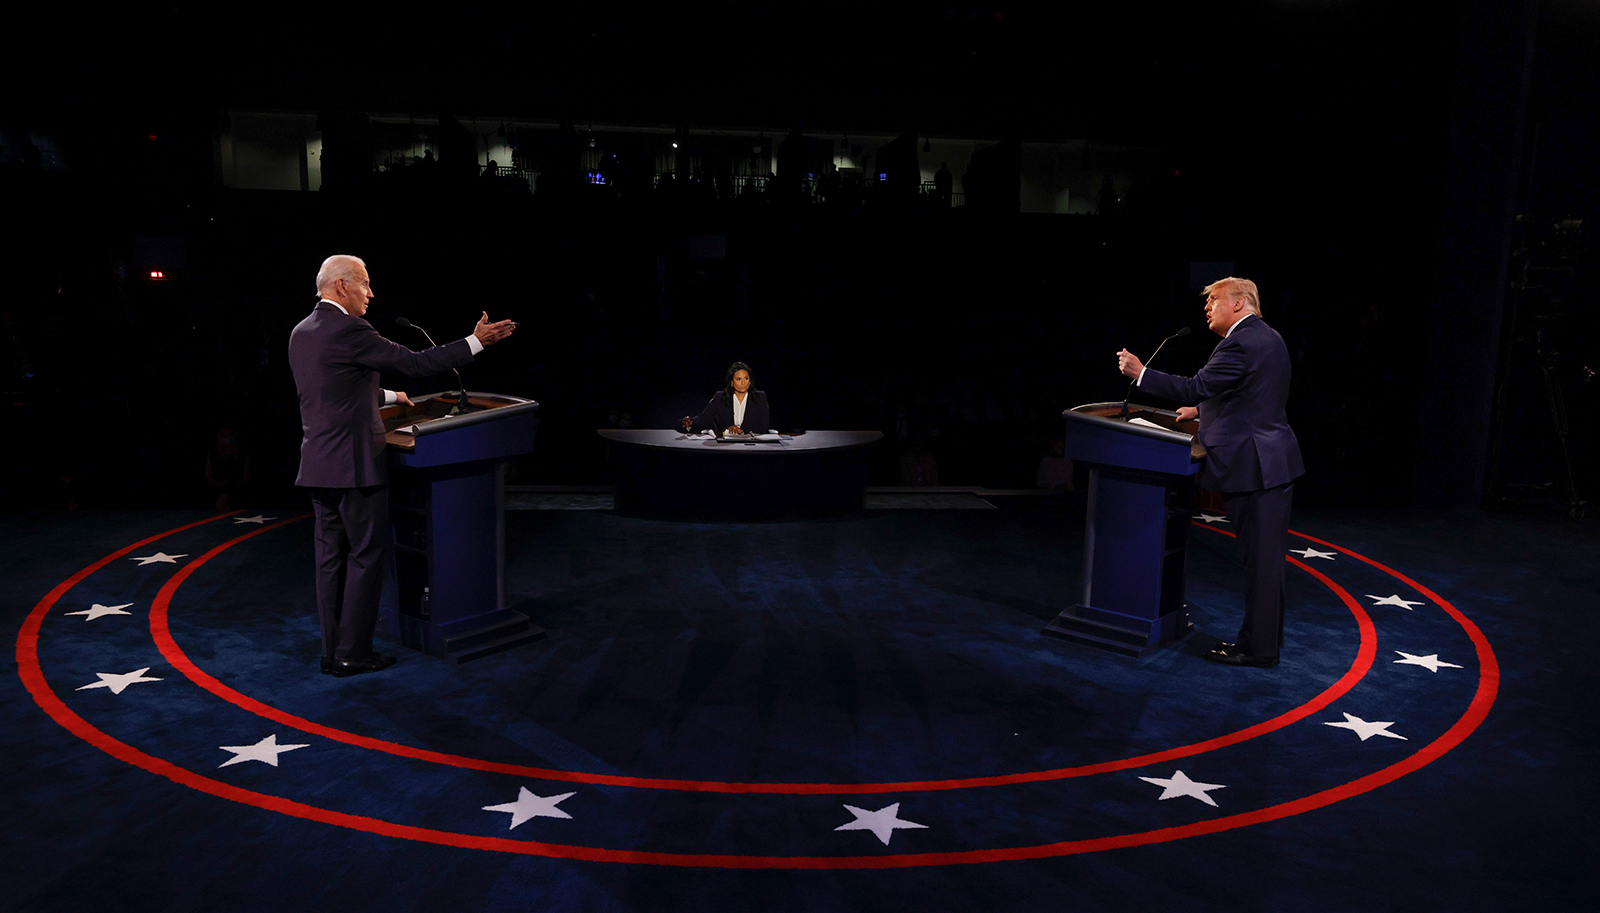 More than 63 million people watched the final presidential debate